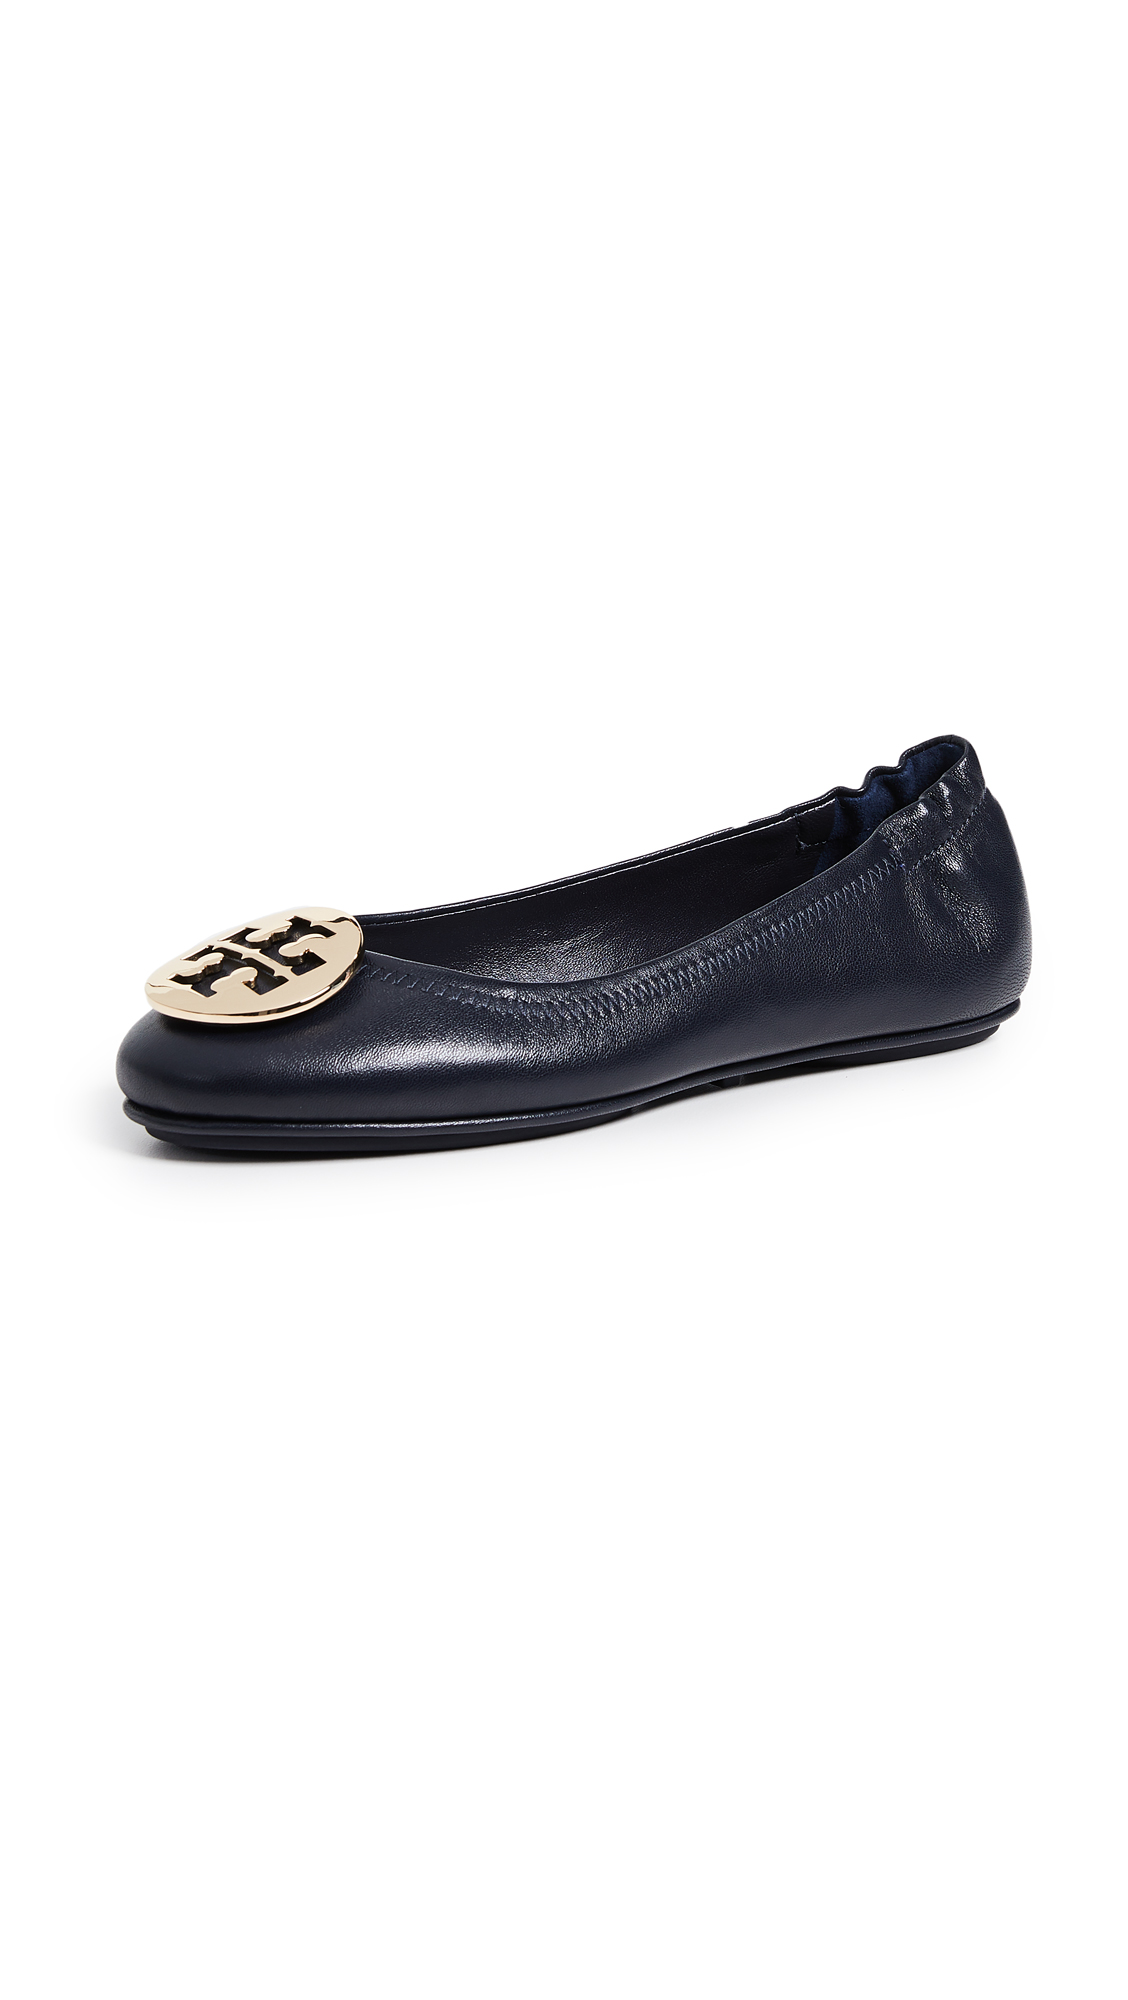 Tory Burch Minnie Travel Ballet Flats - Perfect Navy/Gold